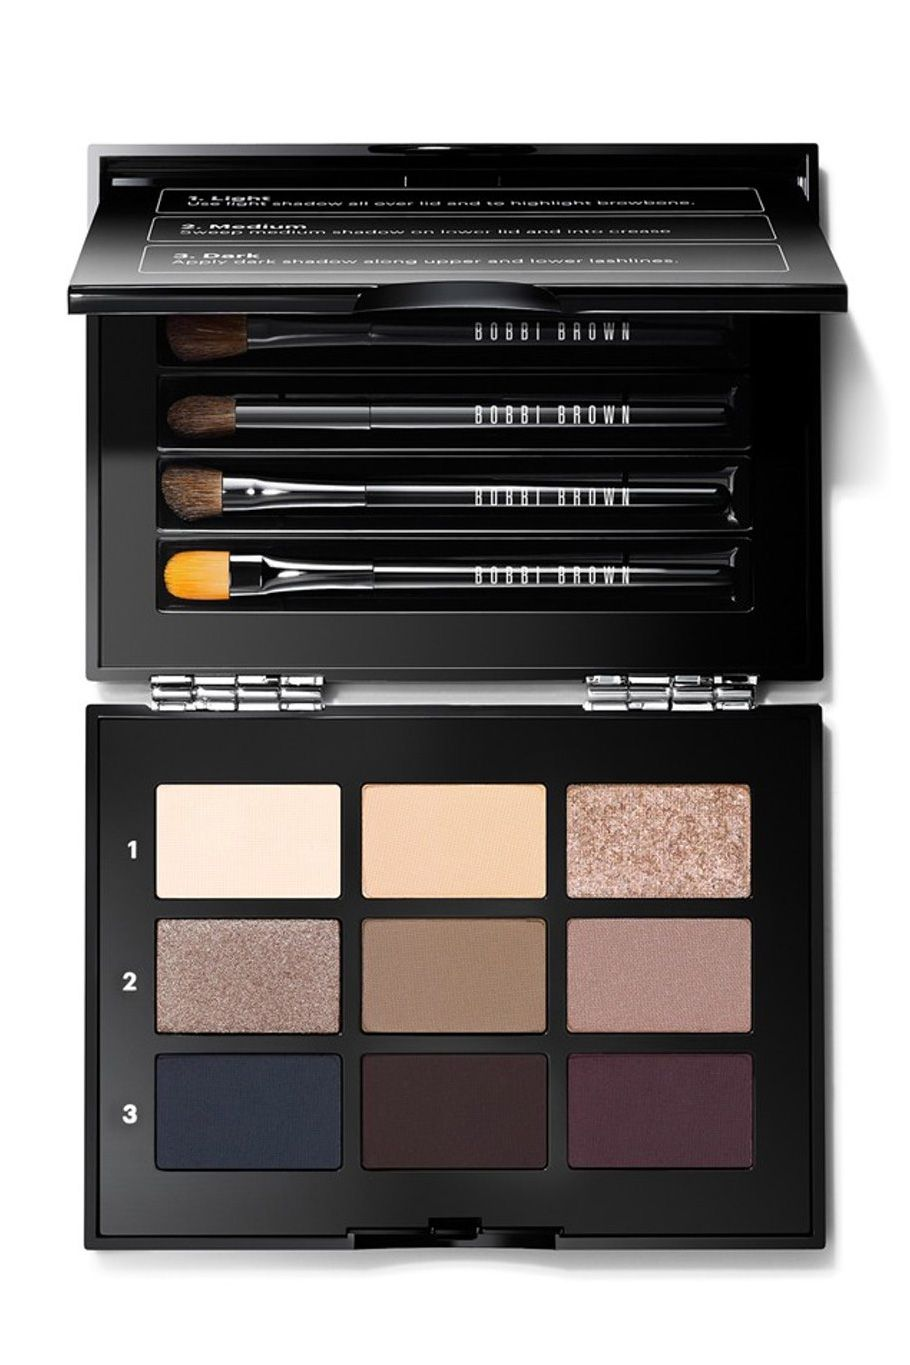 "<p>Leave it to Bobbi Brown to create the ultimate all-in-one eye palette. It includes miniature versions of the legendary makeup artist's four favorite brushes and pretty, iris-enhancing hues like Rich Plum and Royal Navy.</p><p>Bobbi Brown Everything Eyes Palette, $75; <a href=""http://shop.nordstrom.com/s/bobbi-brown-everything-eyes-palette-nordstrom-exclusive-139-value/4292820?origin=category-personalizedsort"" target=""_blank"">nordstrom.com</a></p>"